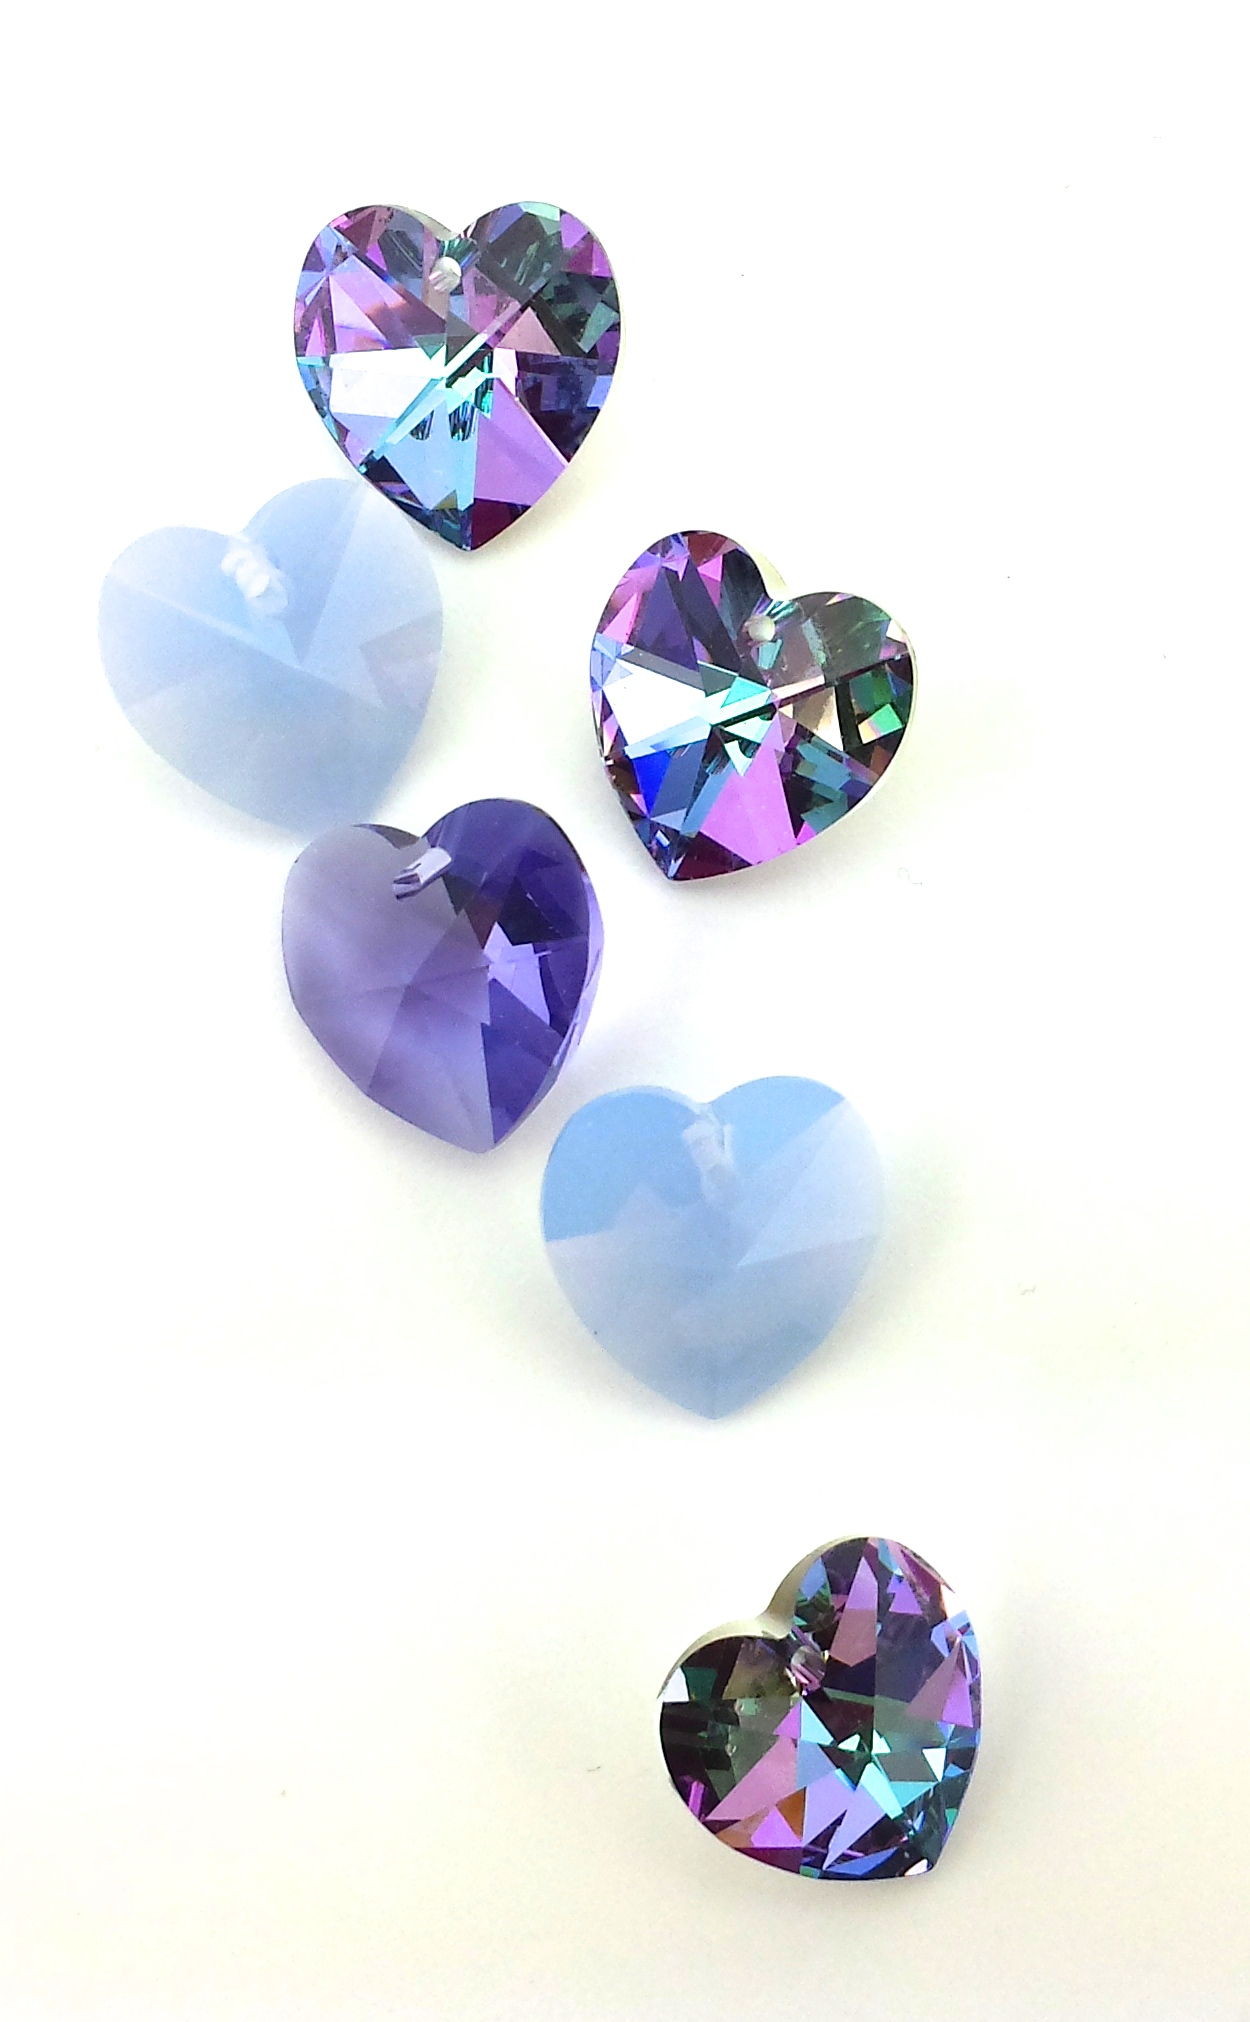 ec426053432f0 Swarovski Crystal Hearts for all of your Valentine's Day Projects ...